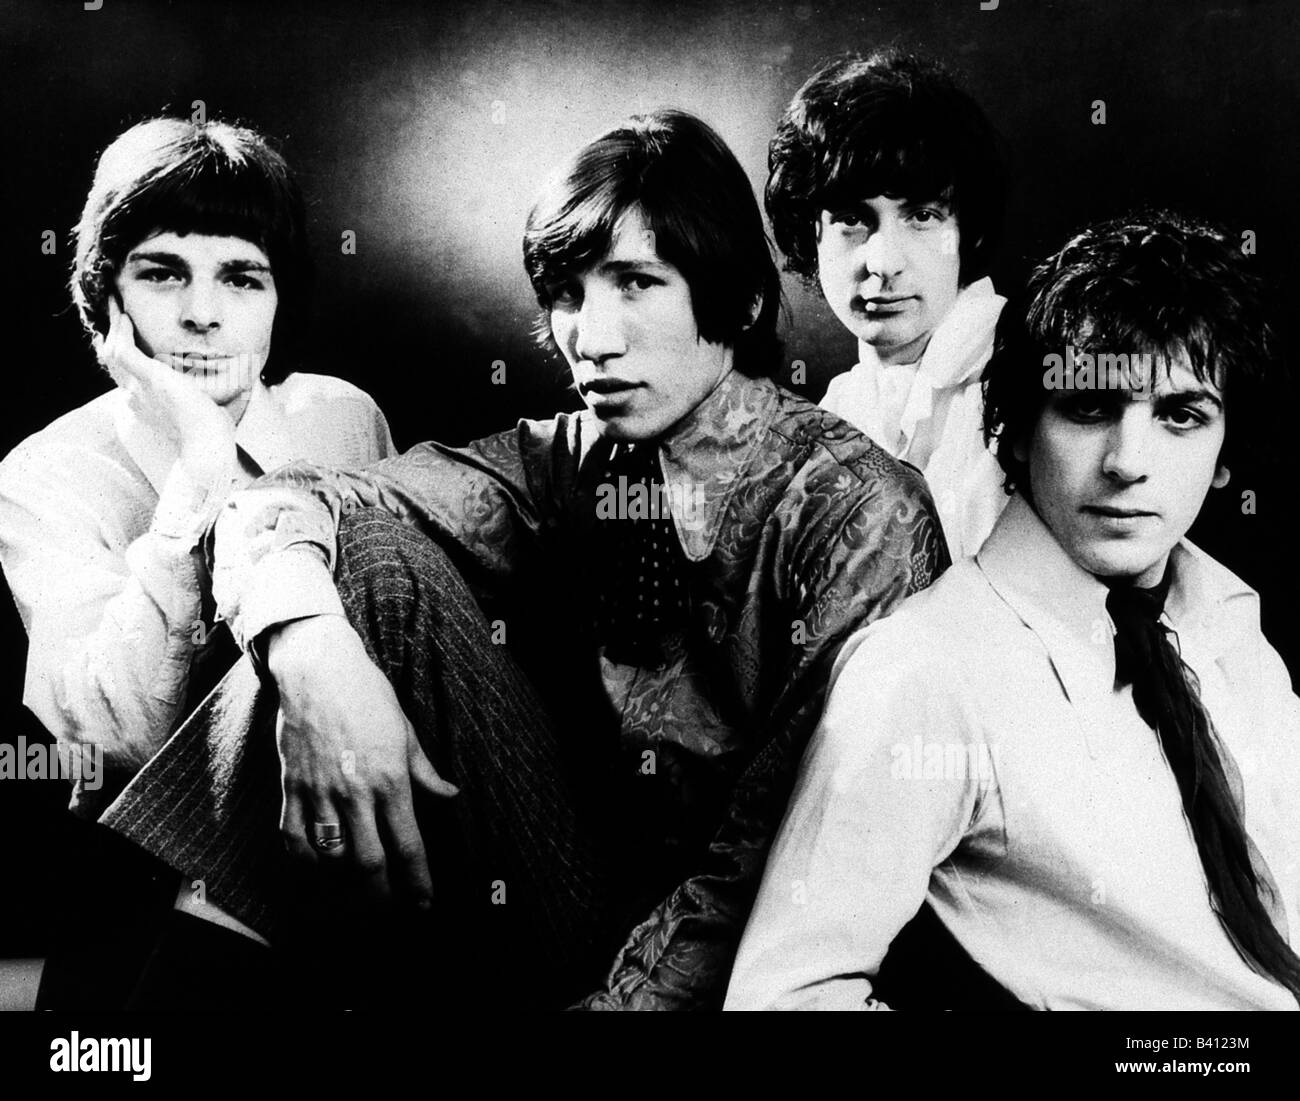 e24b865a Pink Floyd, British pop music band, found in 1965, group picture: Syd  Barrett, Nick Mason, Roger Waters, Richard